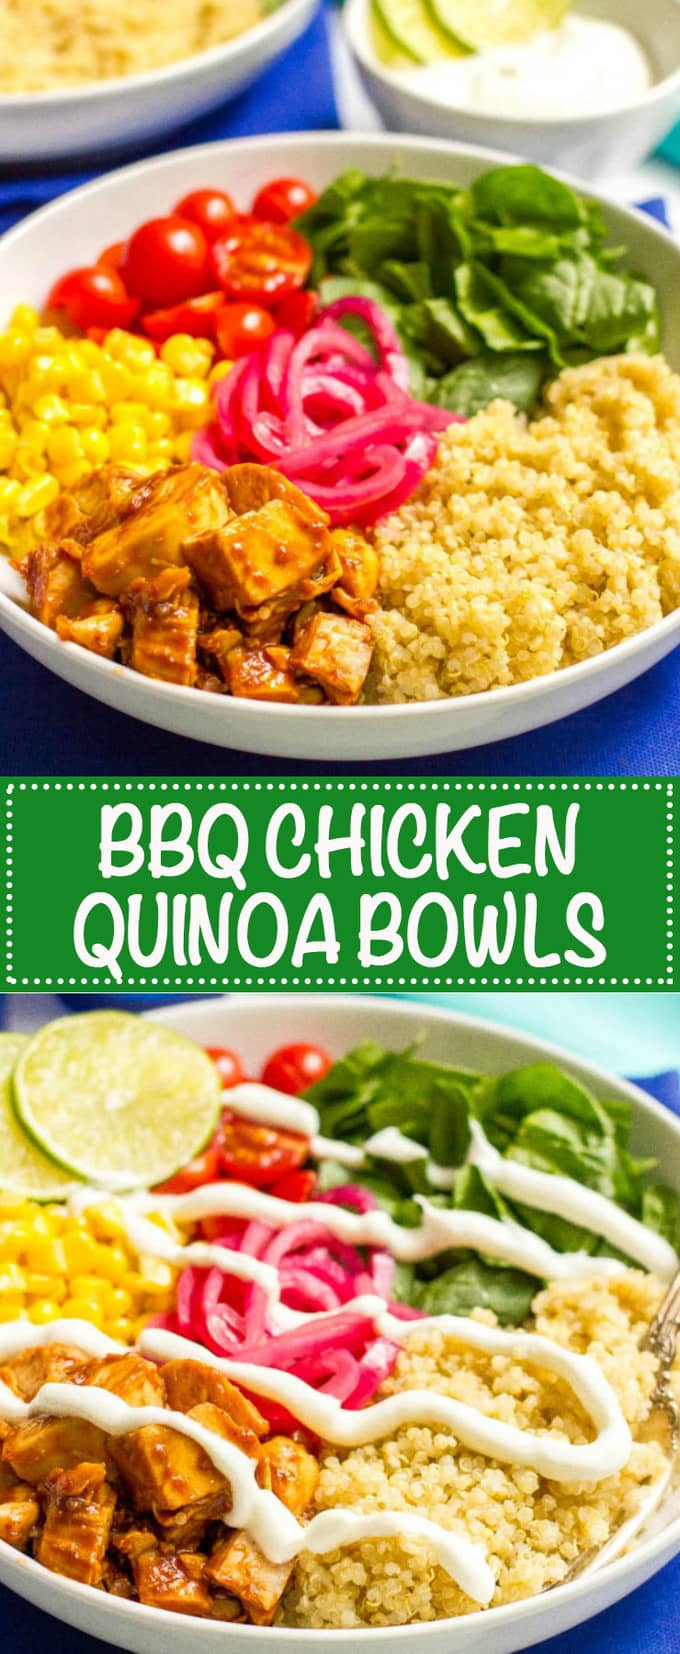 BBQ chicken quinoa salad bowls are full of flavor and fresh veggies and make for a really easy, healthy dinner! Also great as a make-ahead lunch or picnic! | www.familyfoodonthetable.com